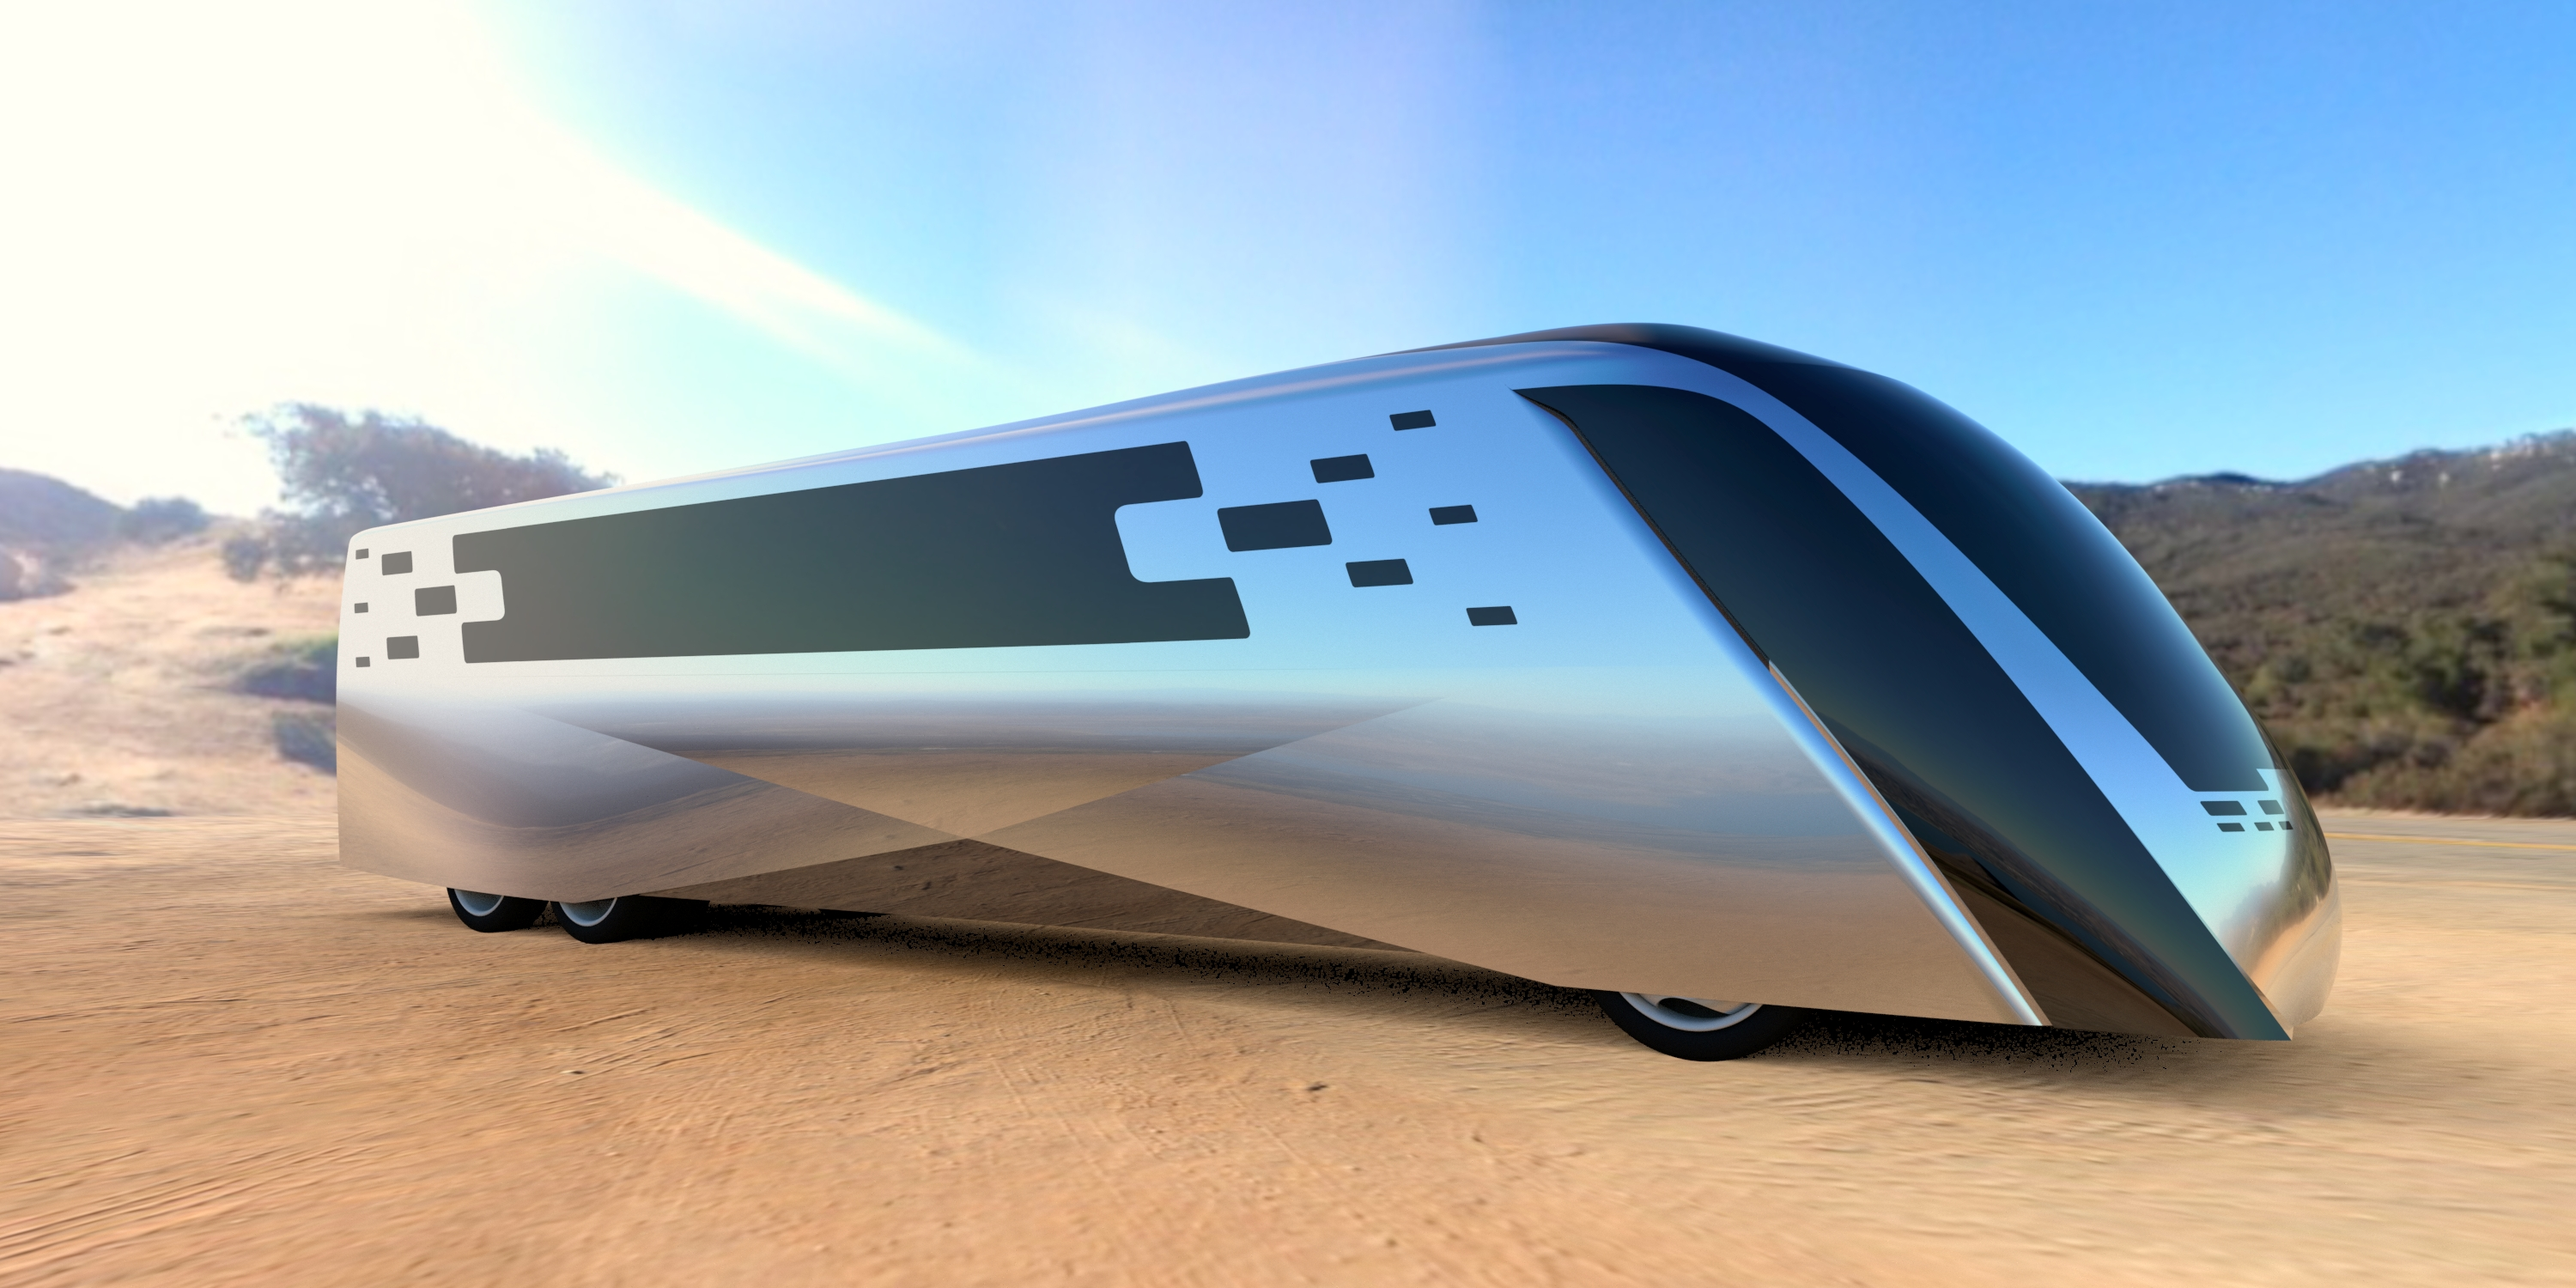 Advanced Clean Touring Bus Concept - Foresee Car Design